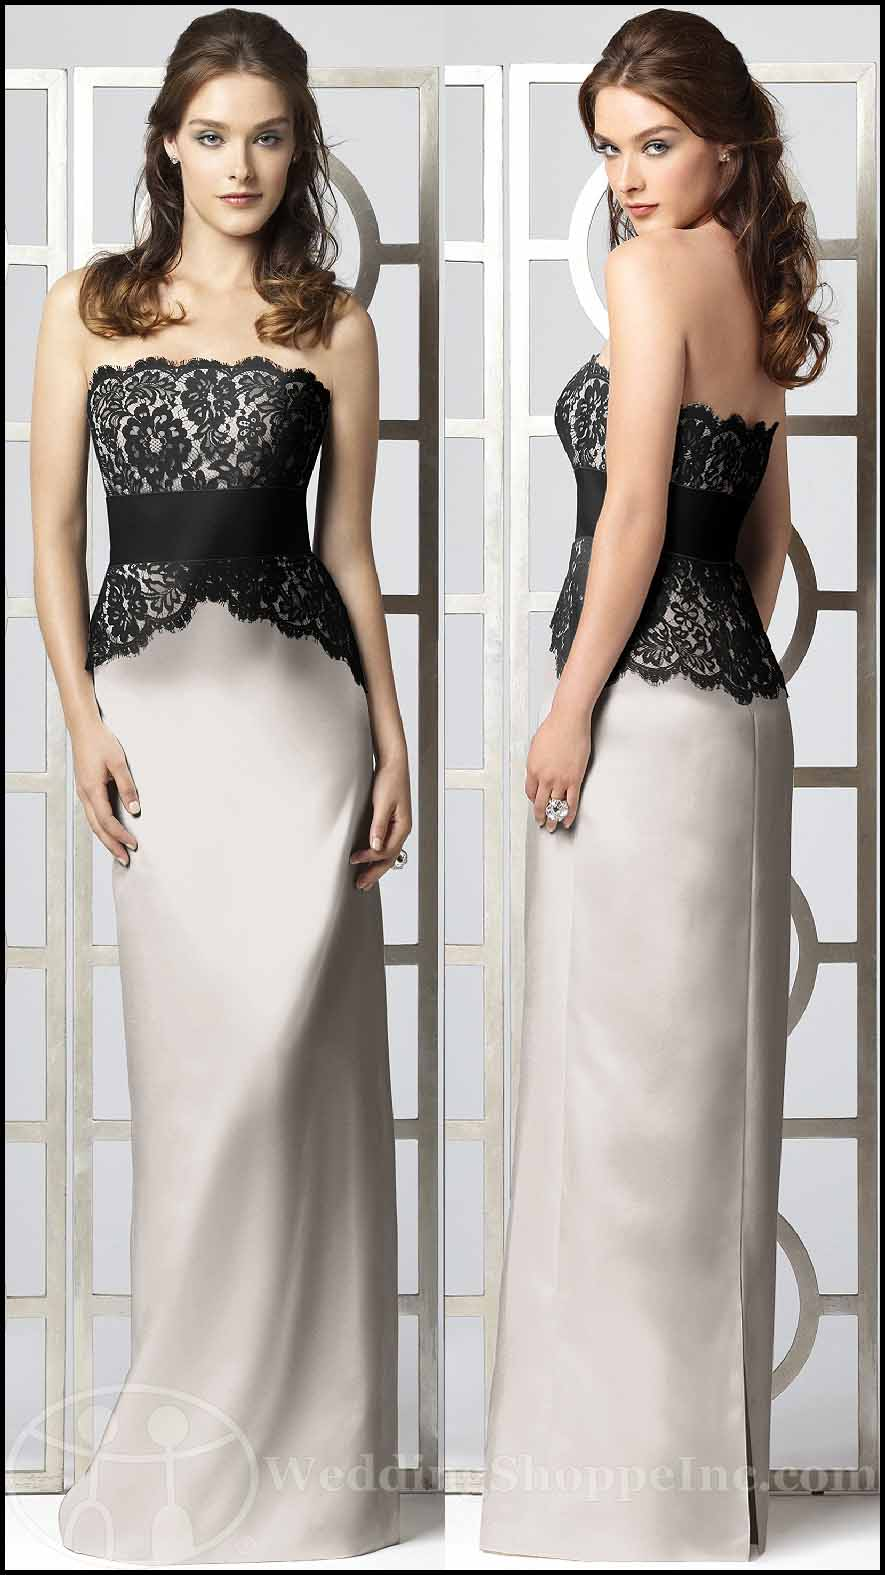 White and Black Lace Bridesmaid Dresses: Dessy 2849